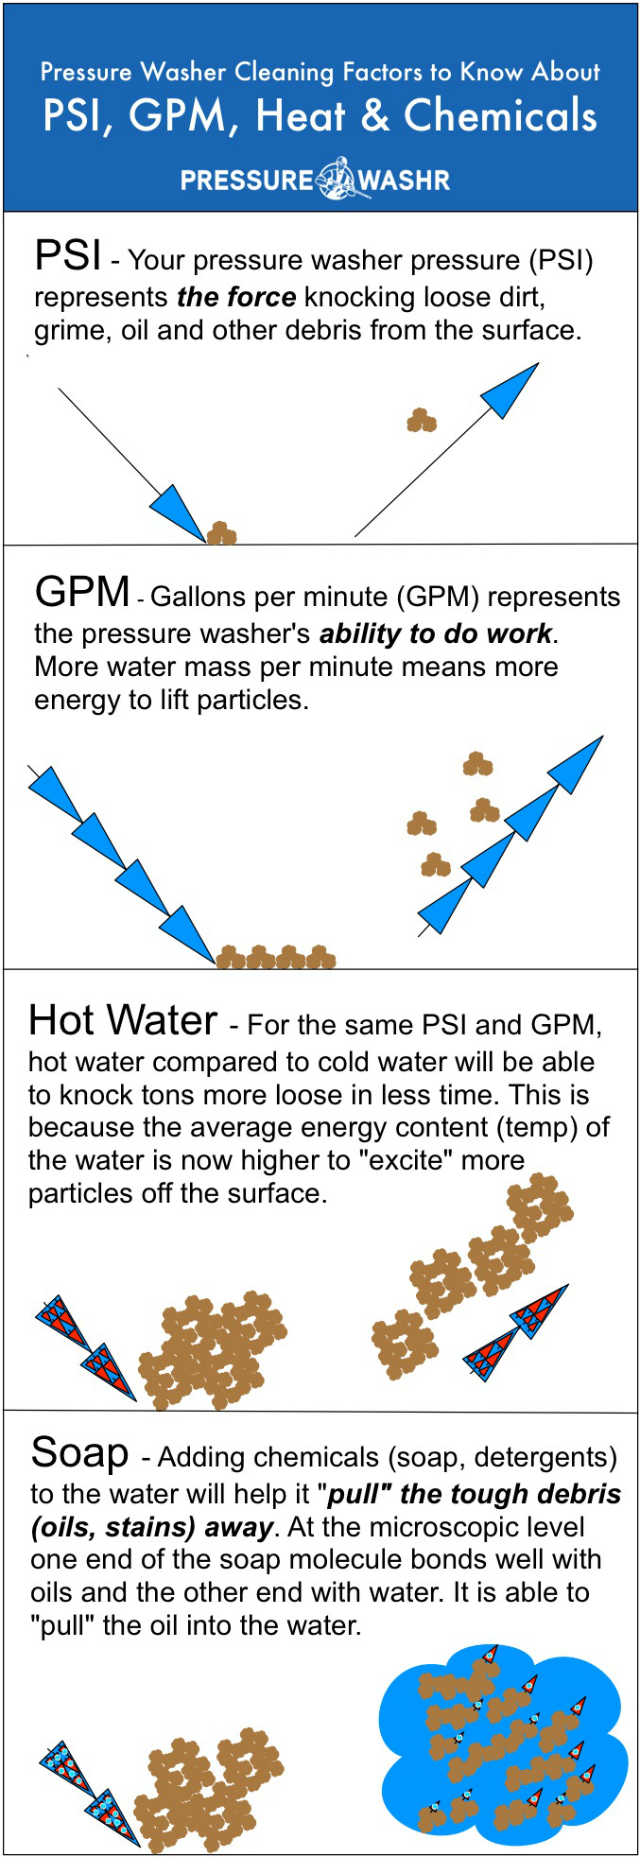 Pressure washer cleaning factors psi gpm hot water chemicals infographic